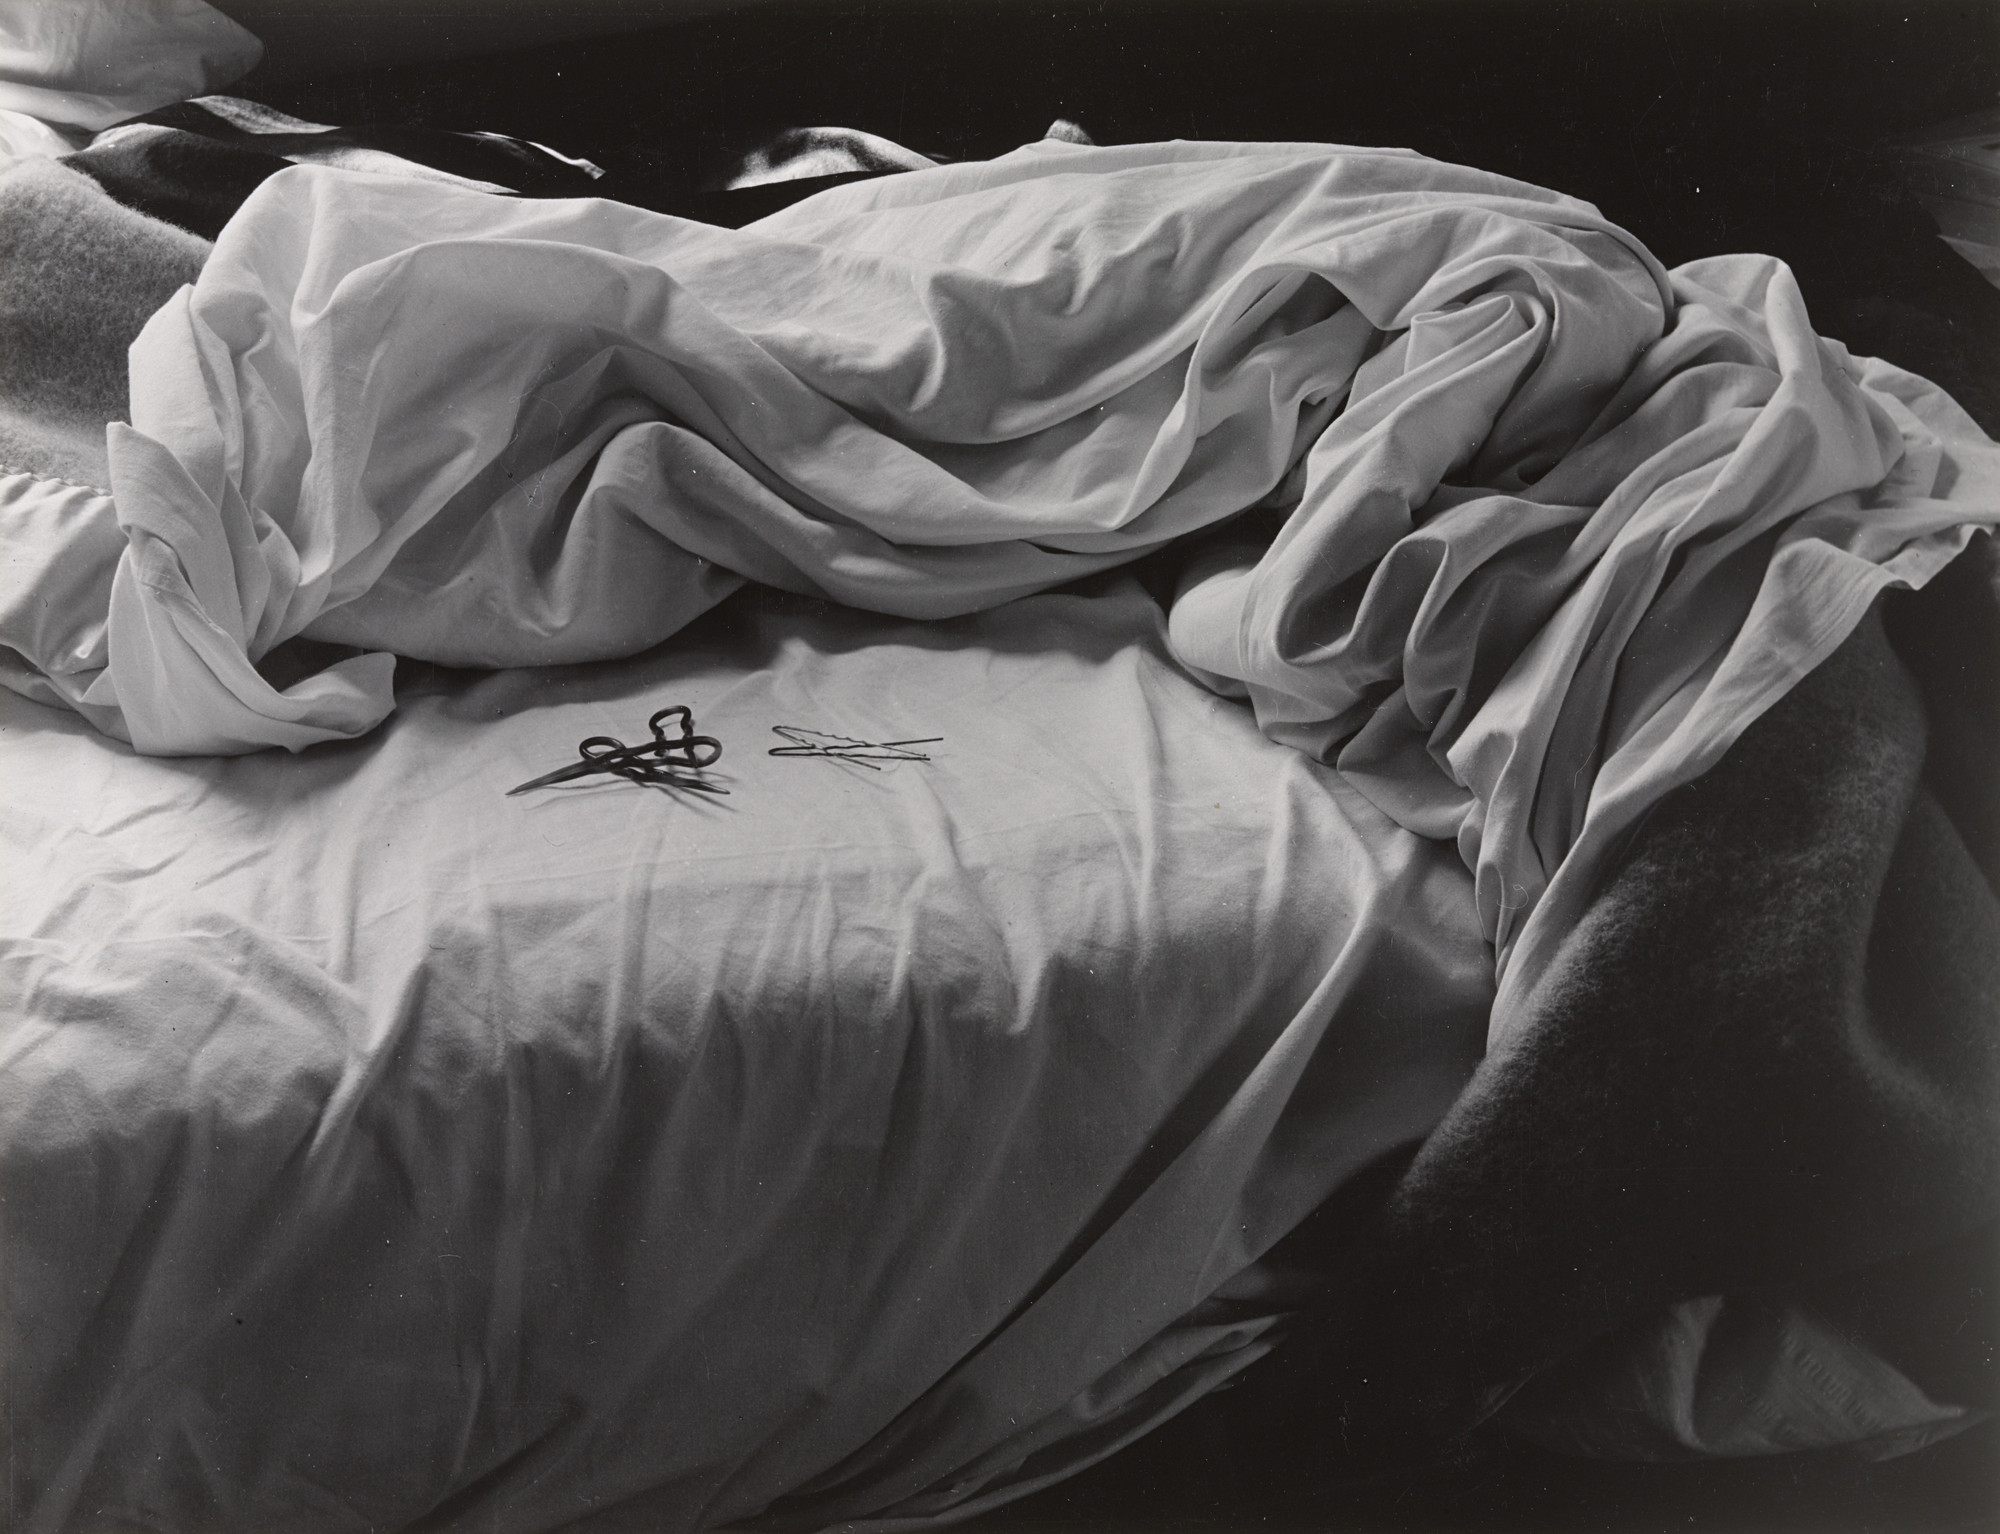 Imogen Cunningham. The Unmade Bed. 1958